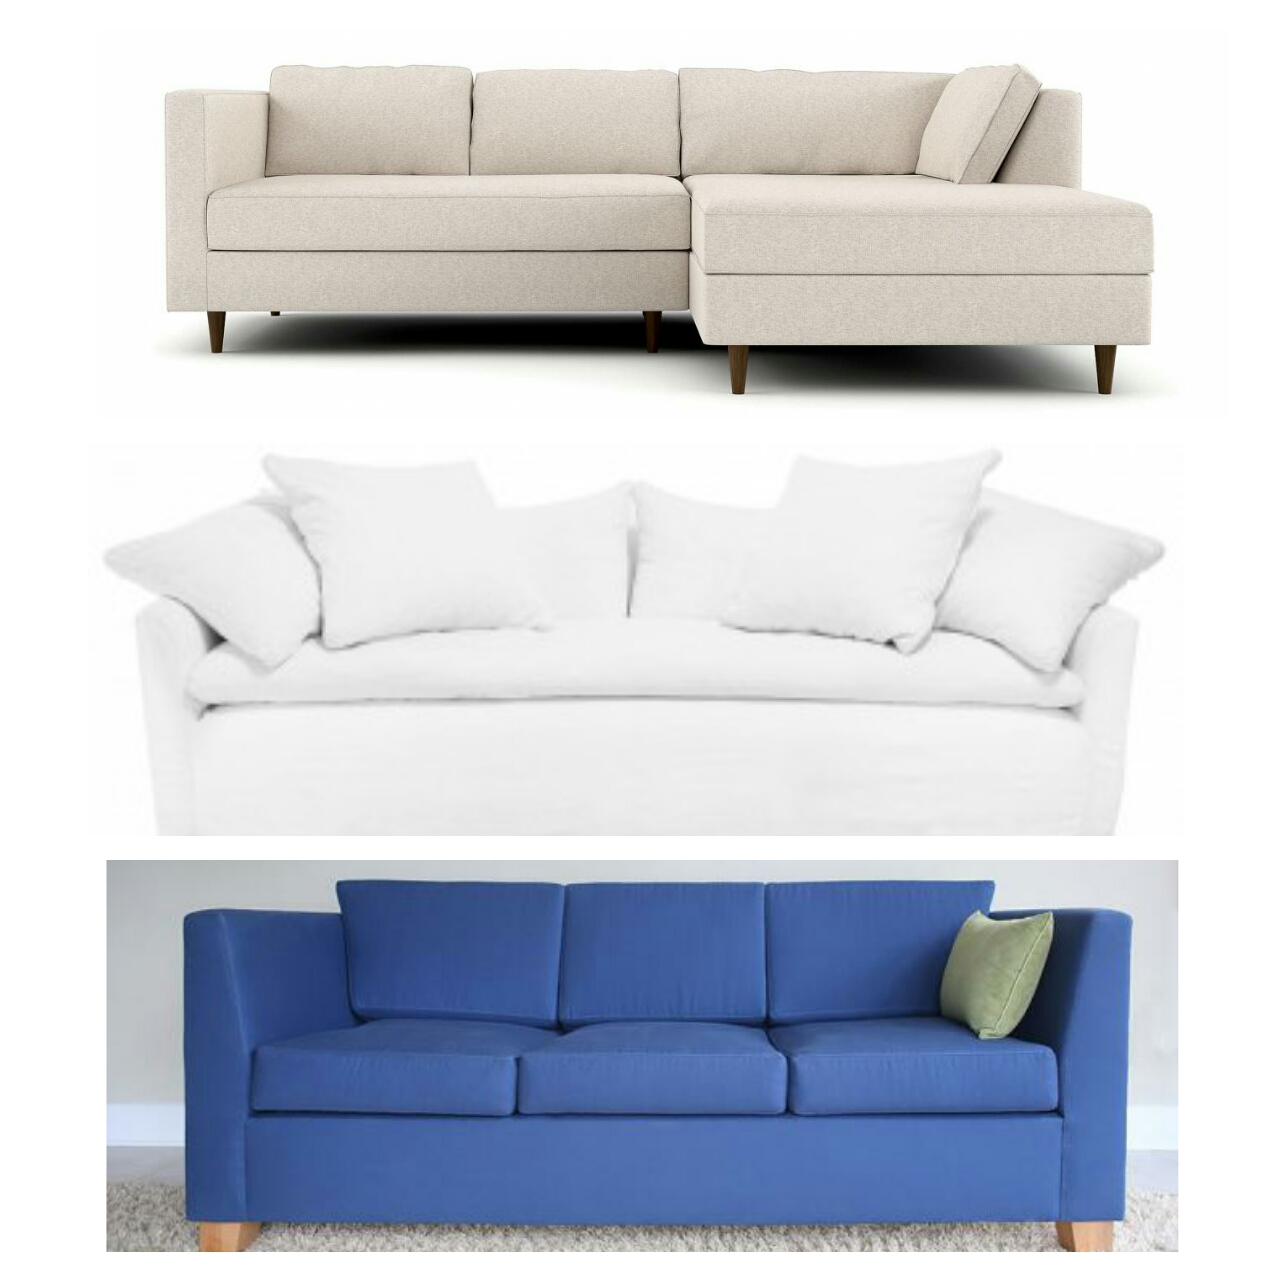 non toxic sofa guide which sofa brand is non toxic rh gonewmommy com non toxic sofa sectionals non toxic sofa sets